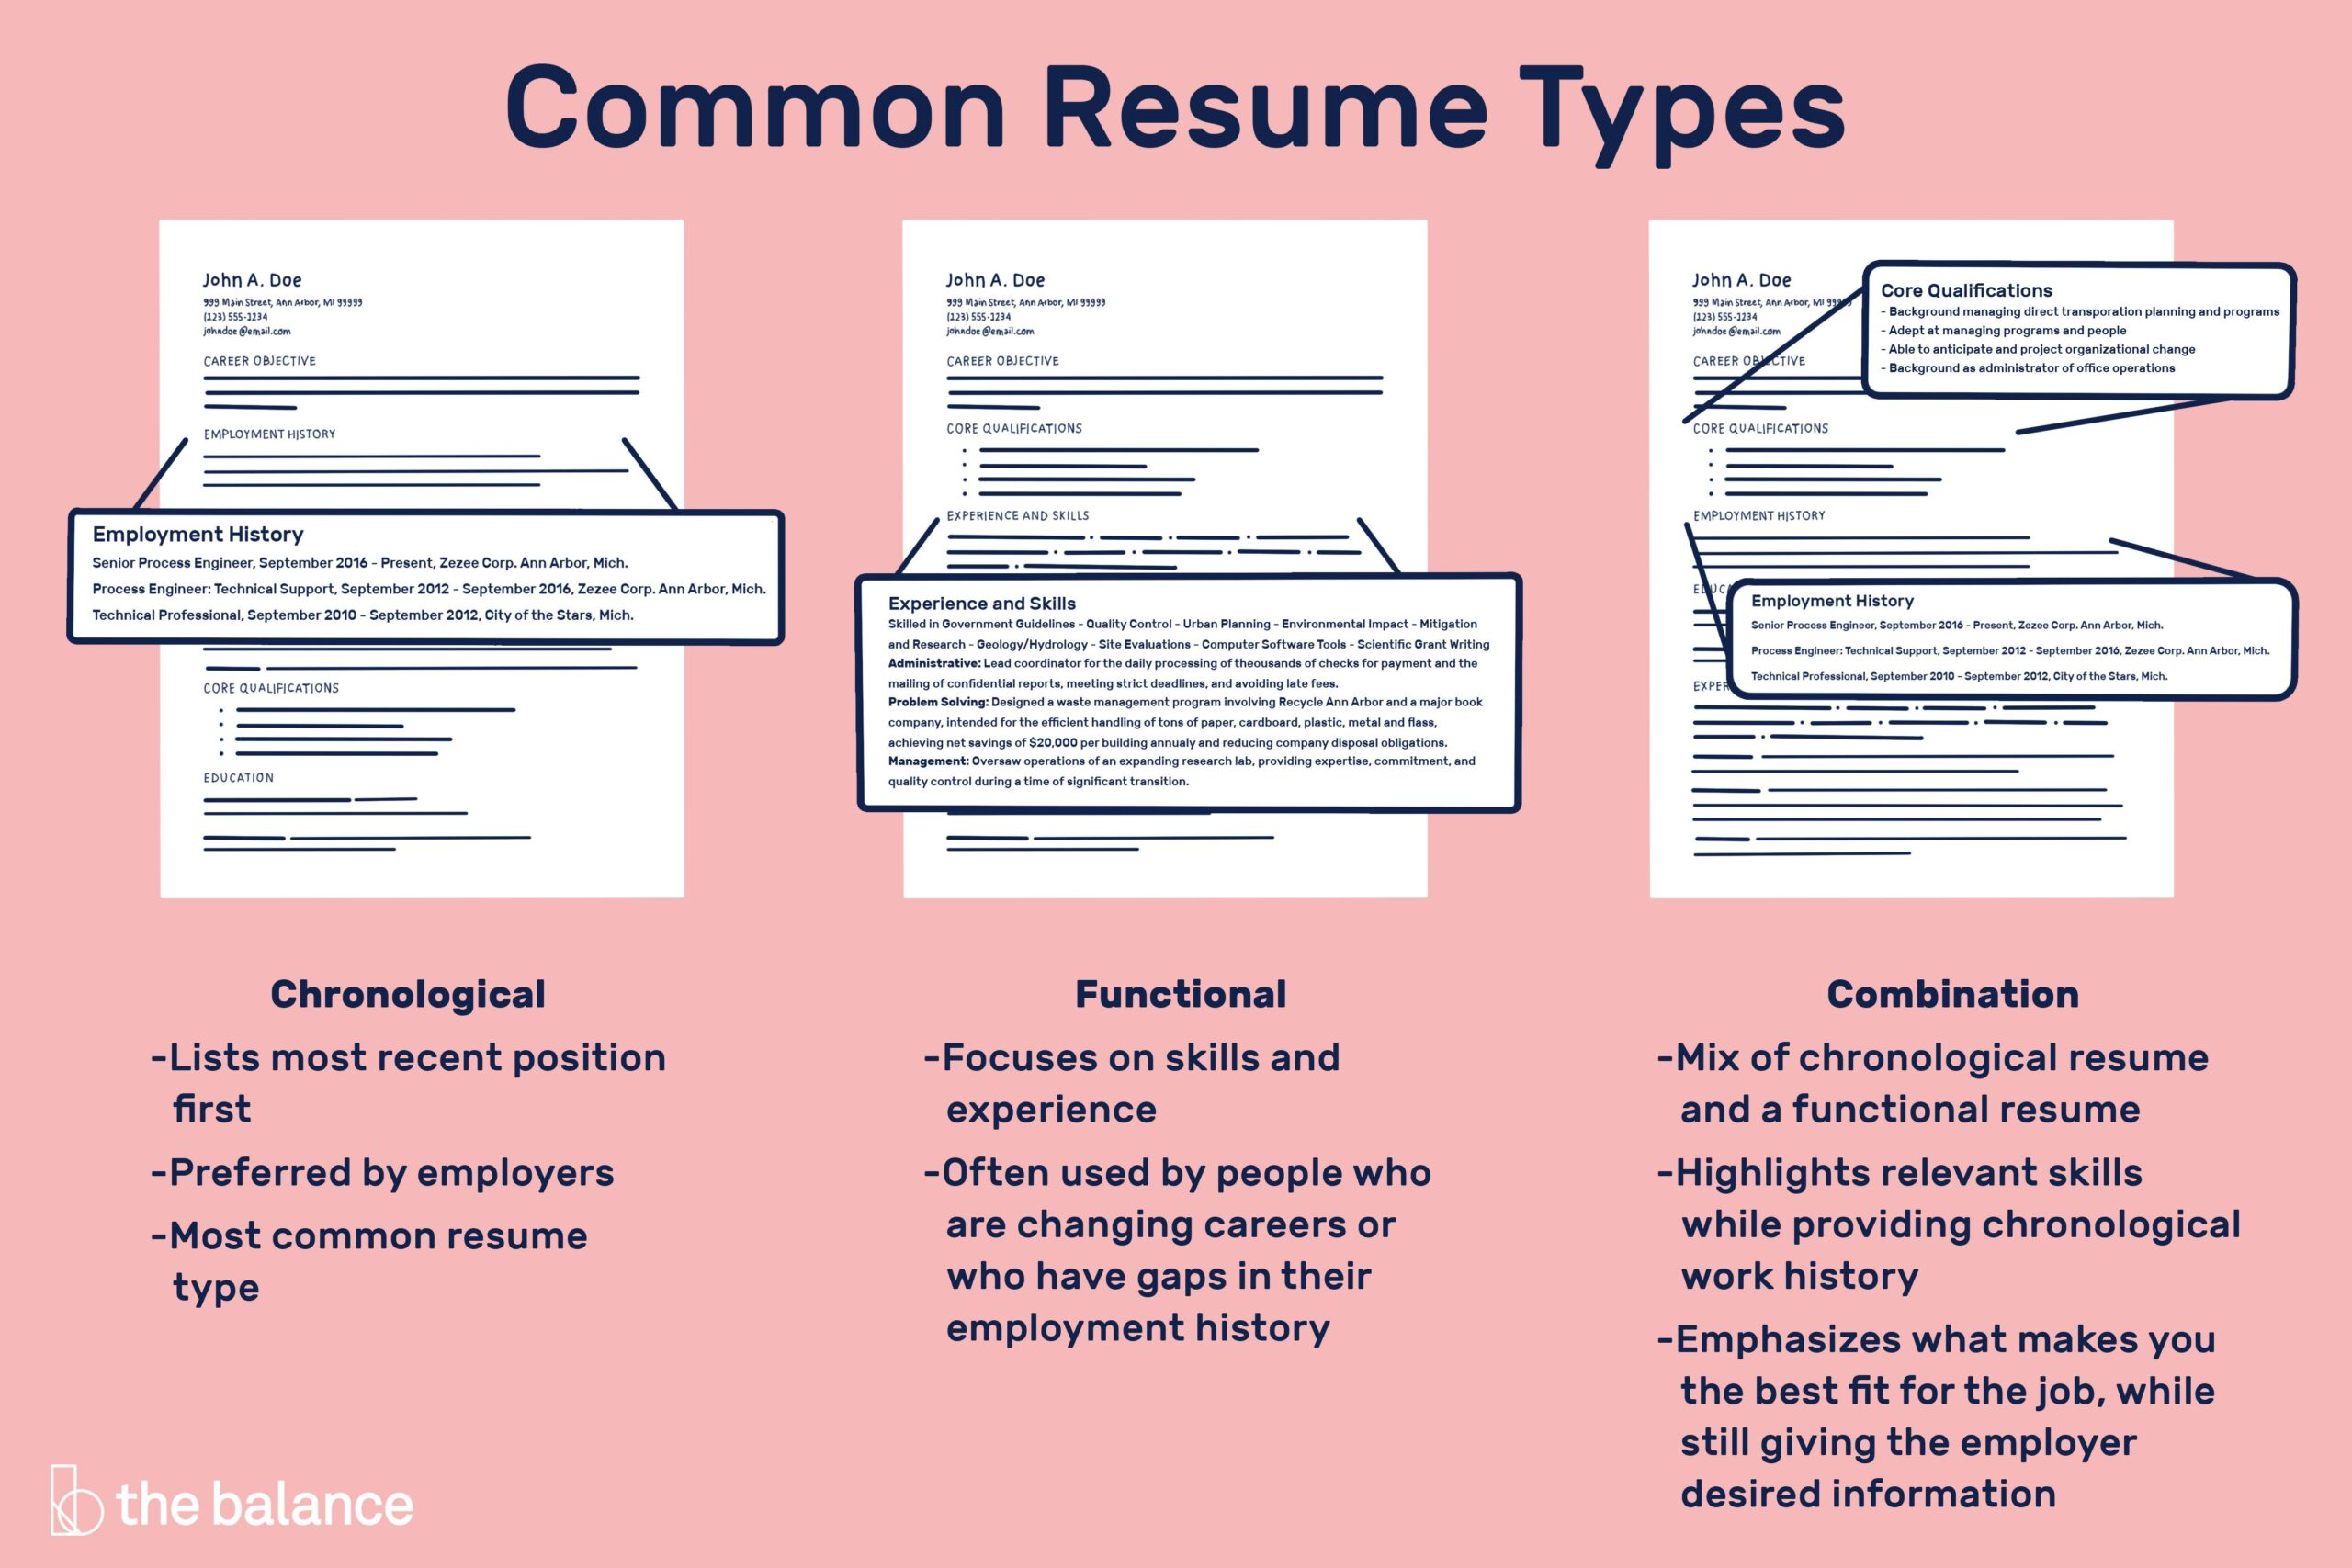 different resume types chronological and functional formats combination 2063235v4 fix up Resume Chronological And Functional Resume Formats